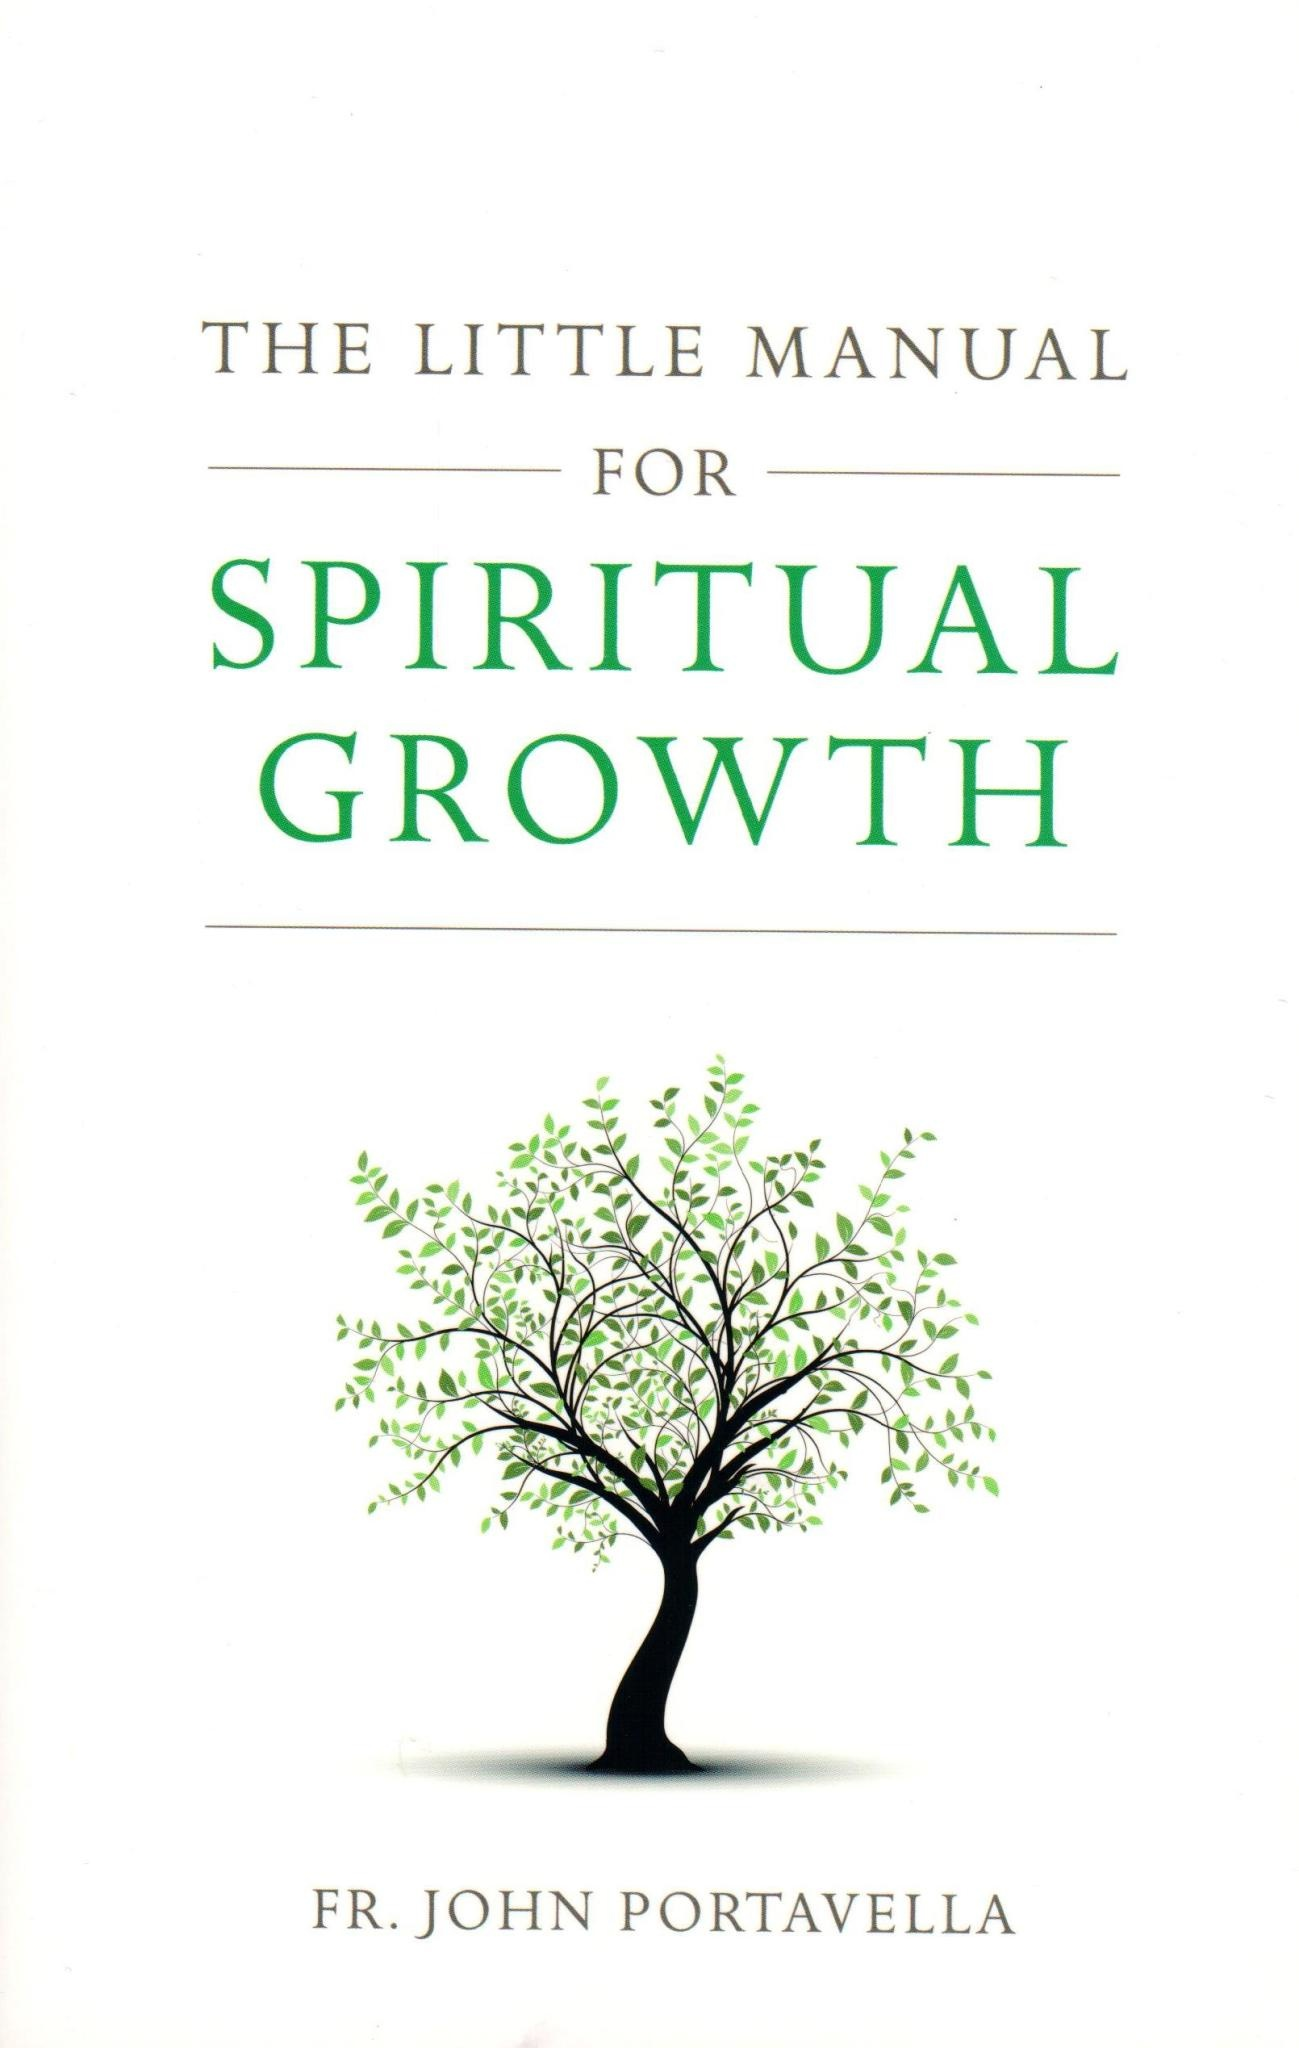 The Little Manual for Spiritual Growth